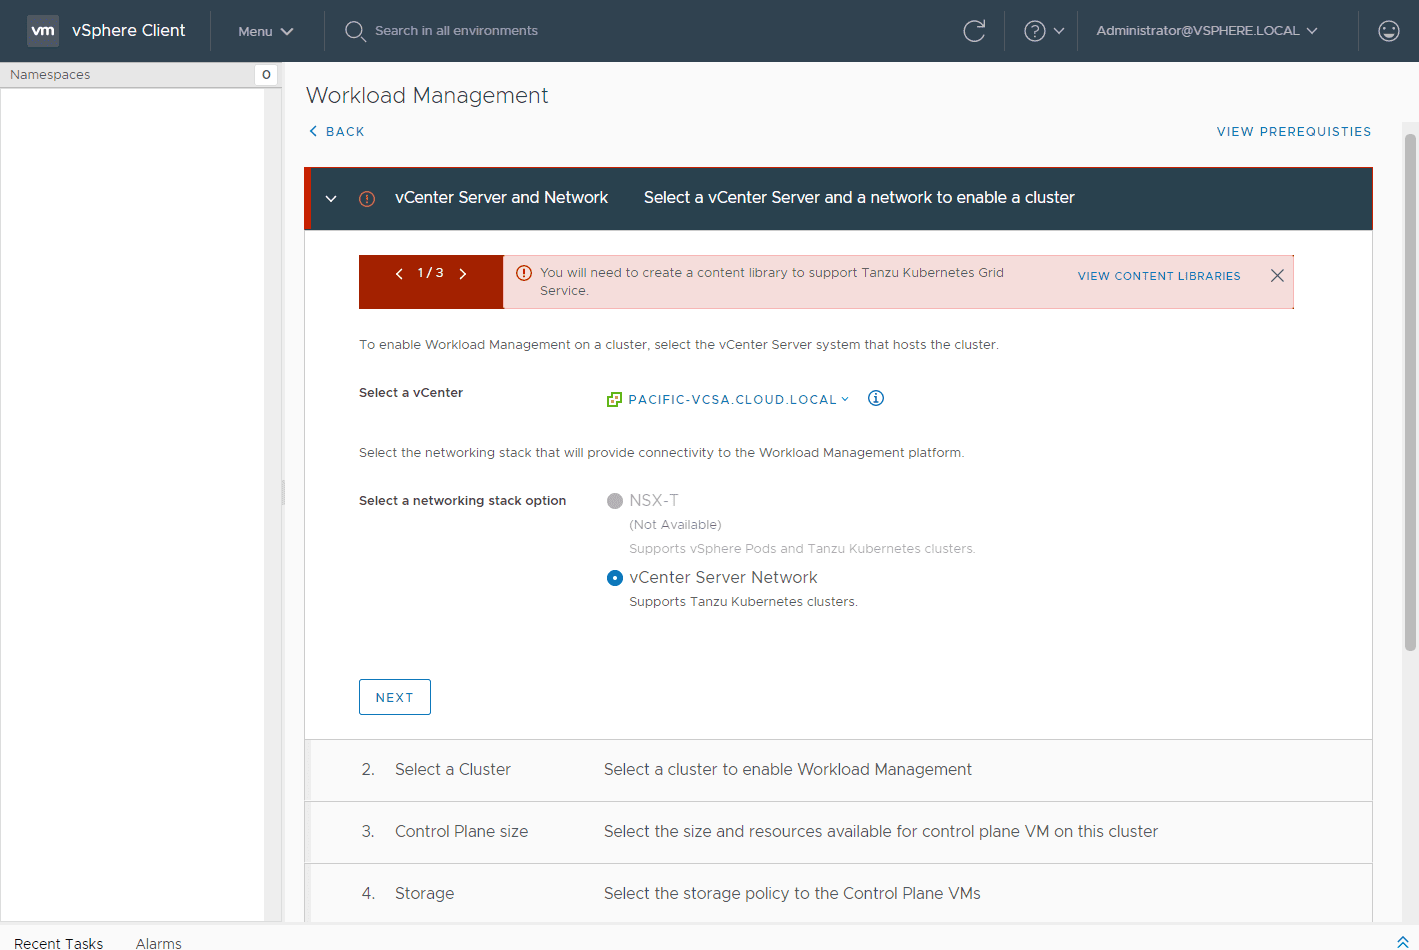 Choose-the-vCenter-Server-and-network Configure VMware vSphere with Tanzu Workload Management